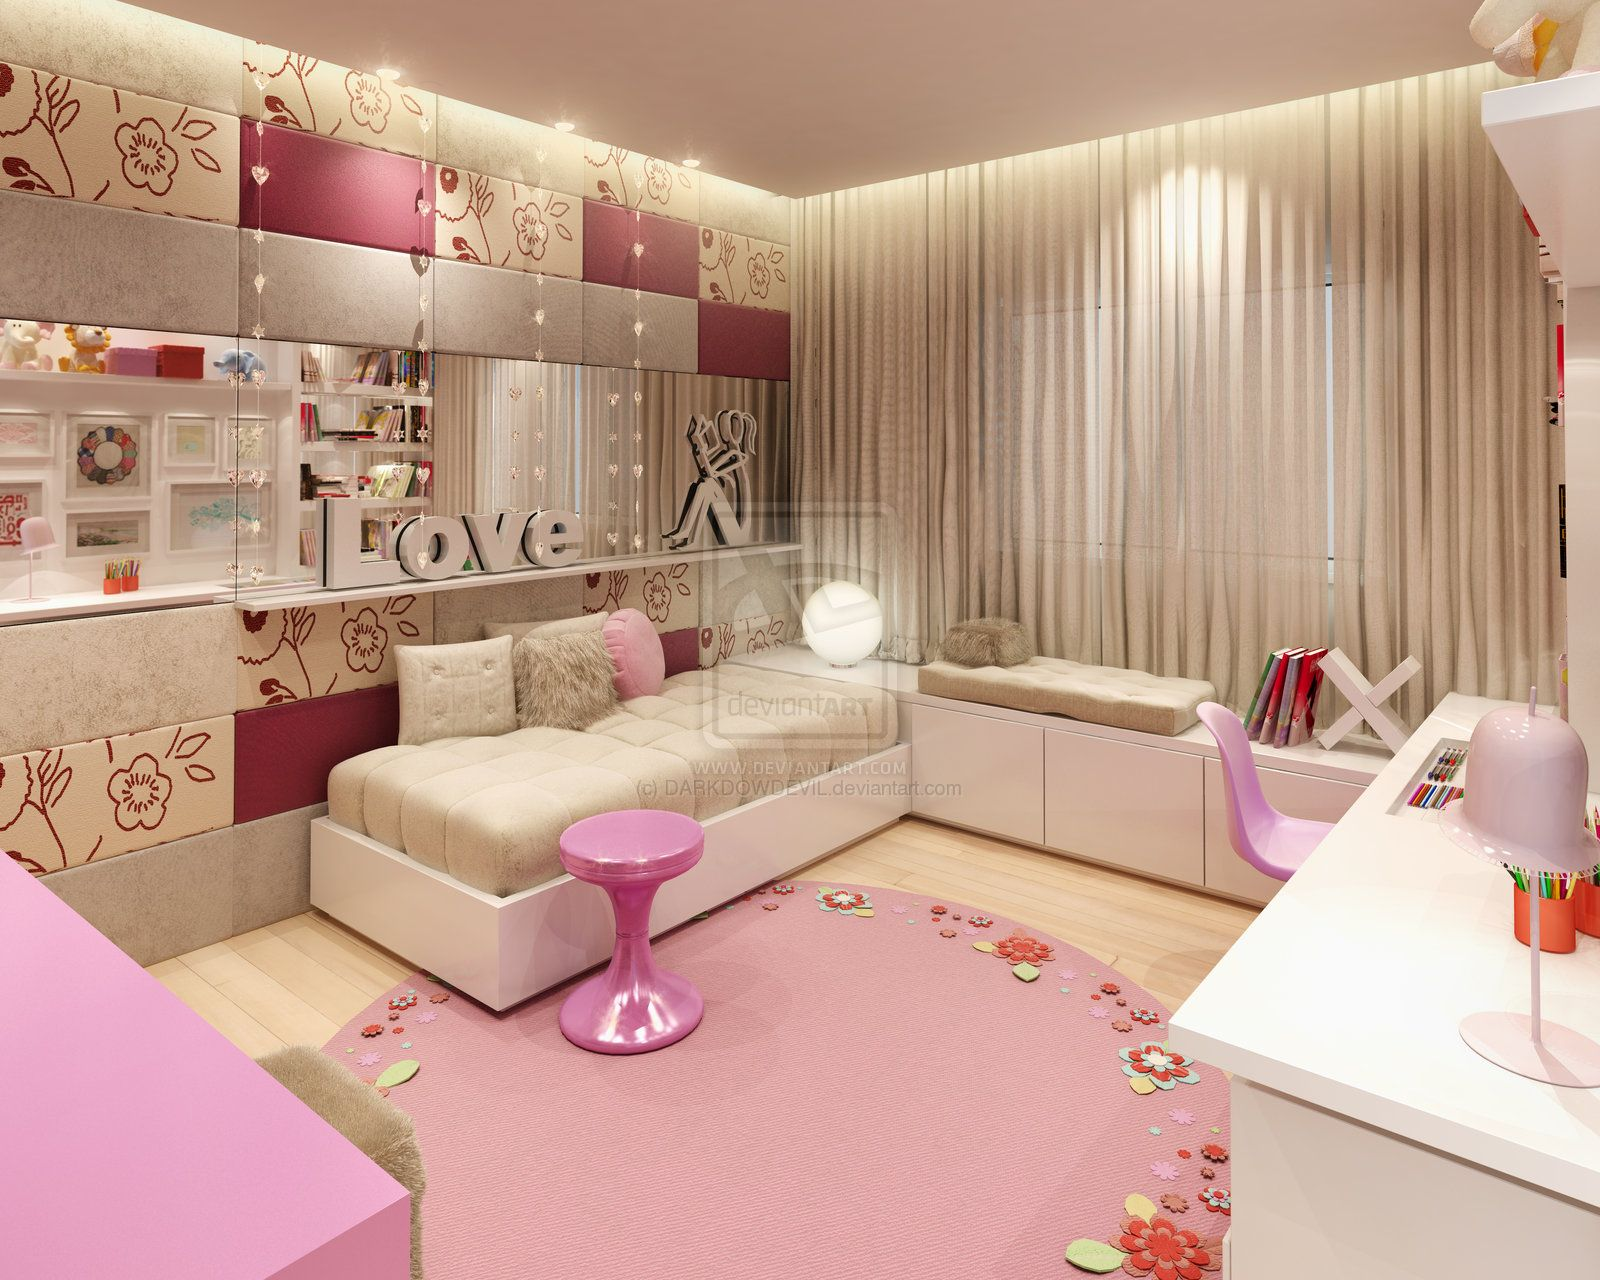 30 dream interior design ideas for teenage girls rooms - Bedroom For Girls